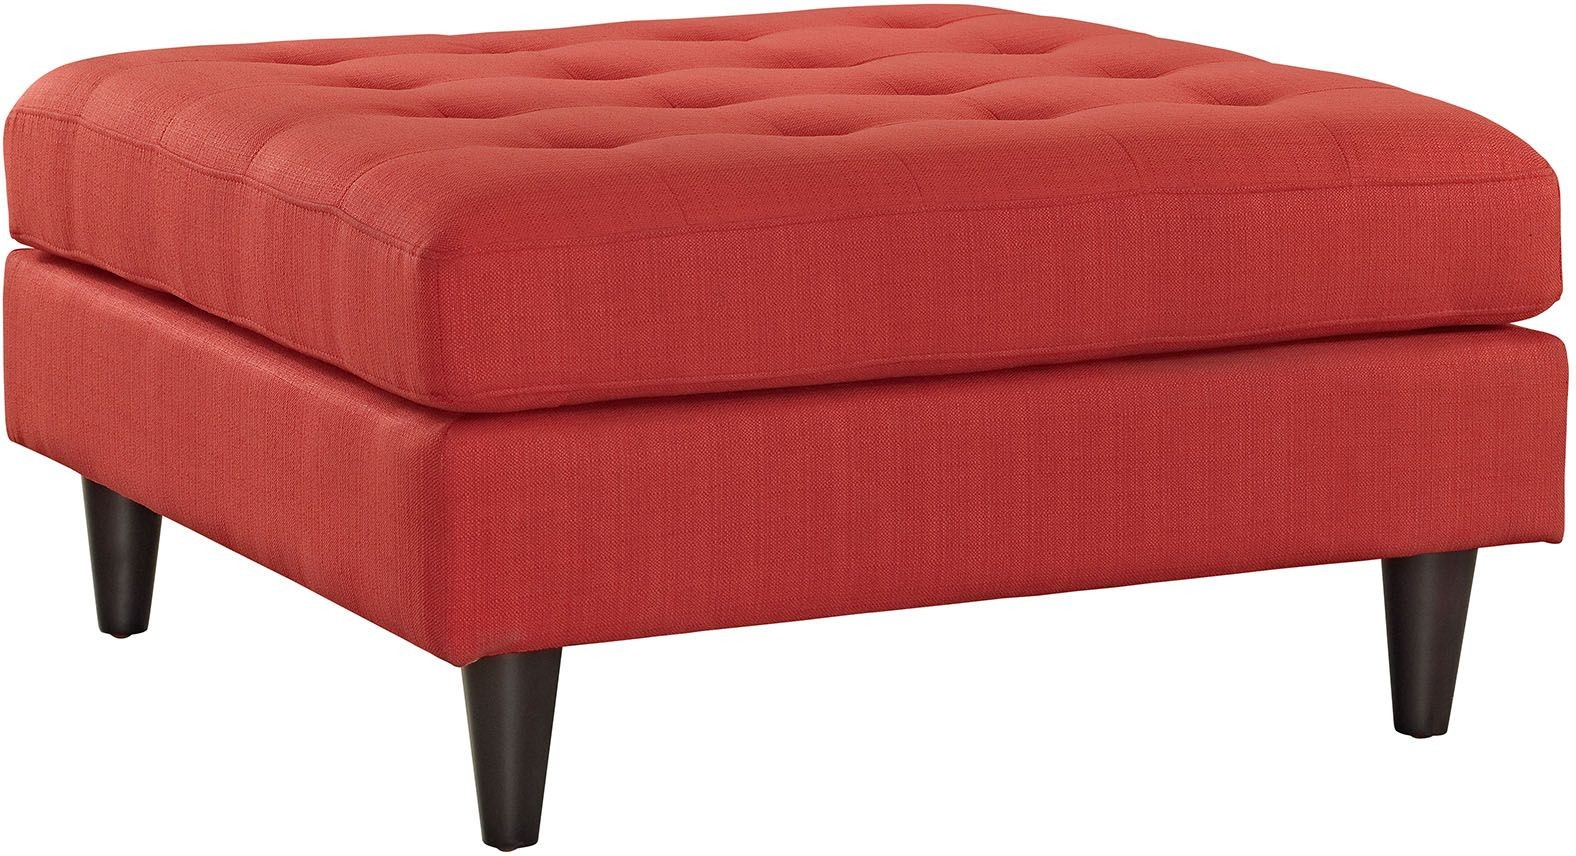 Eei 2139 Ato Empress Atomic Red Bench From Renegade Coleman Furniture